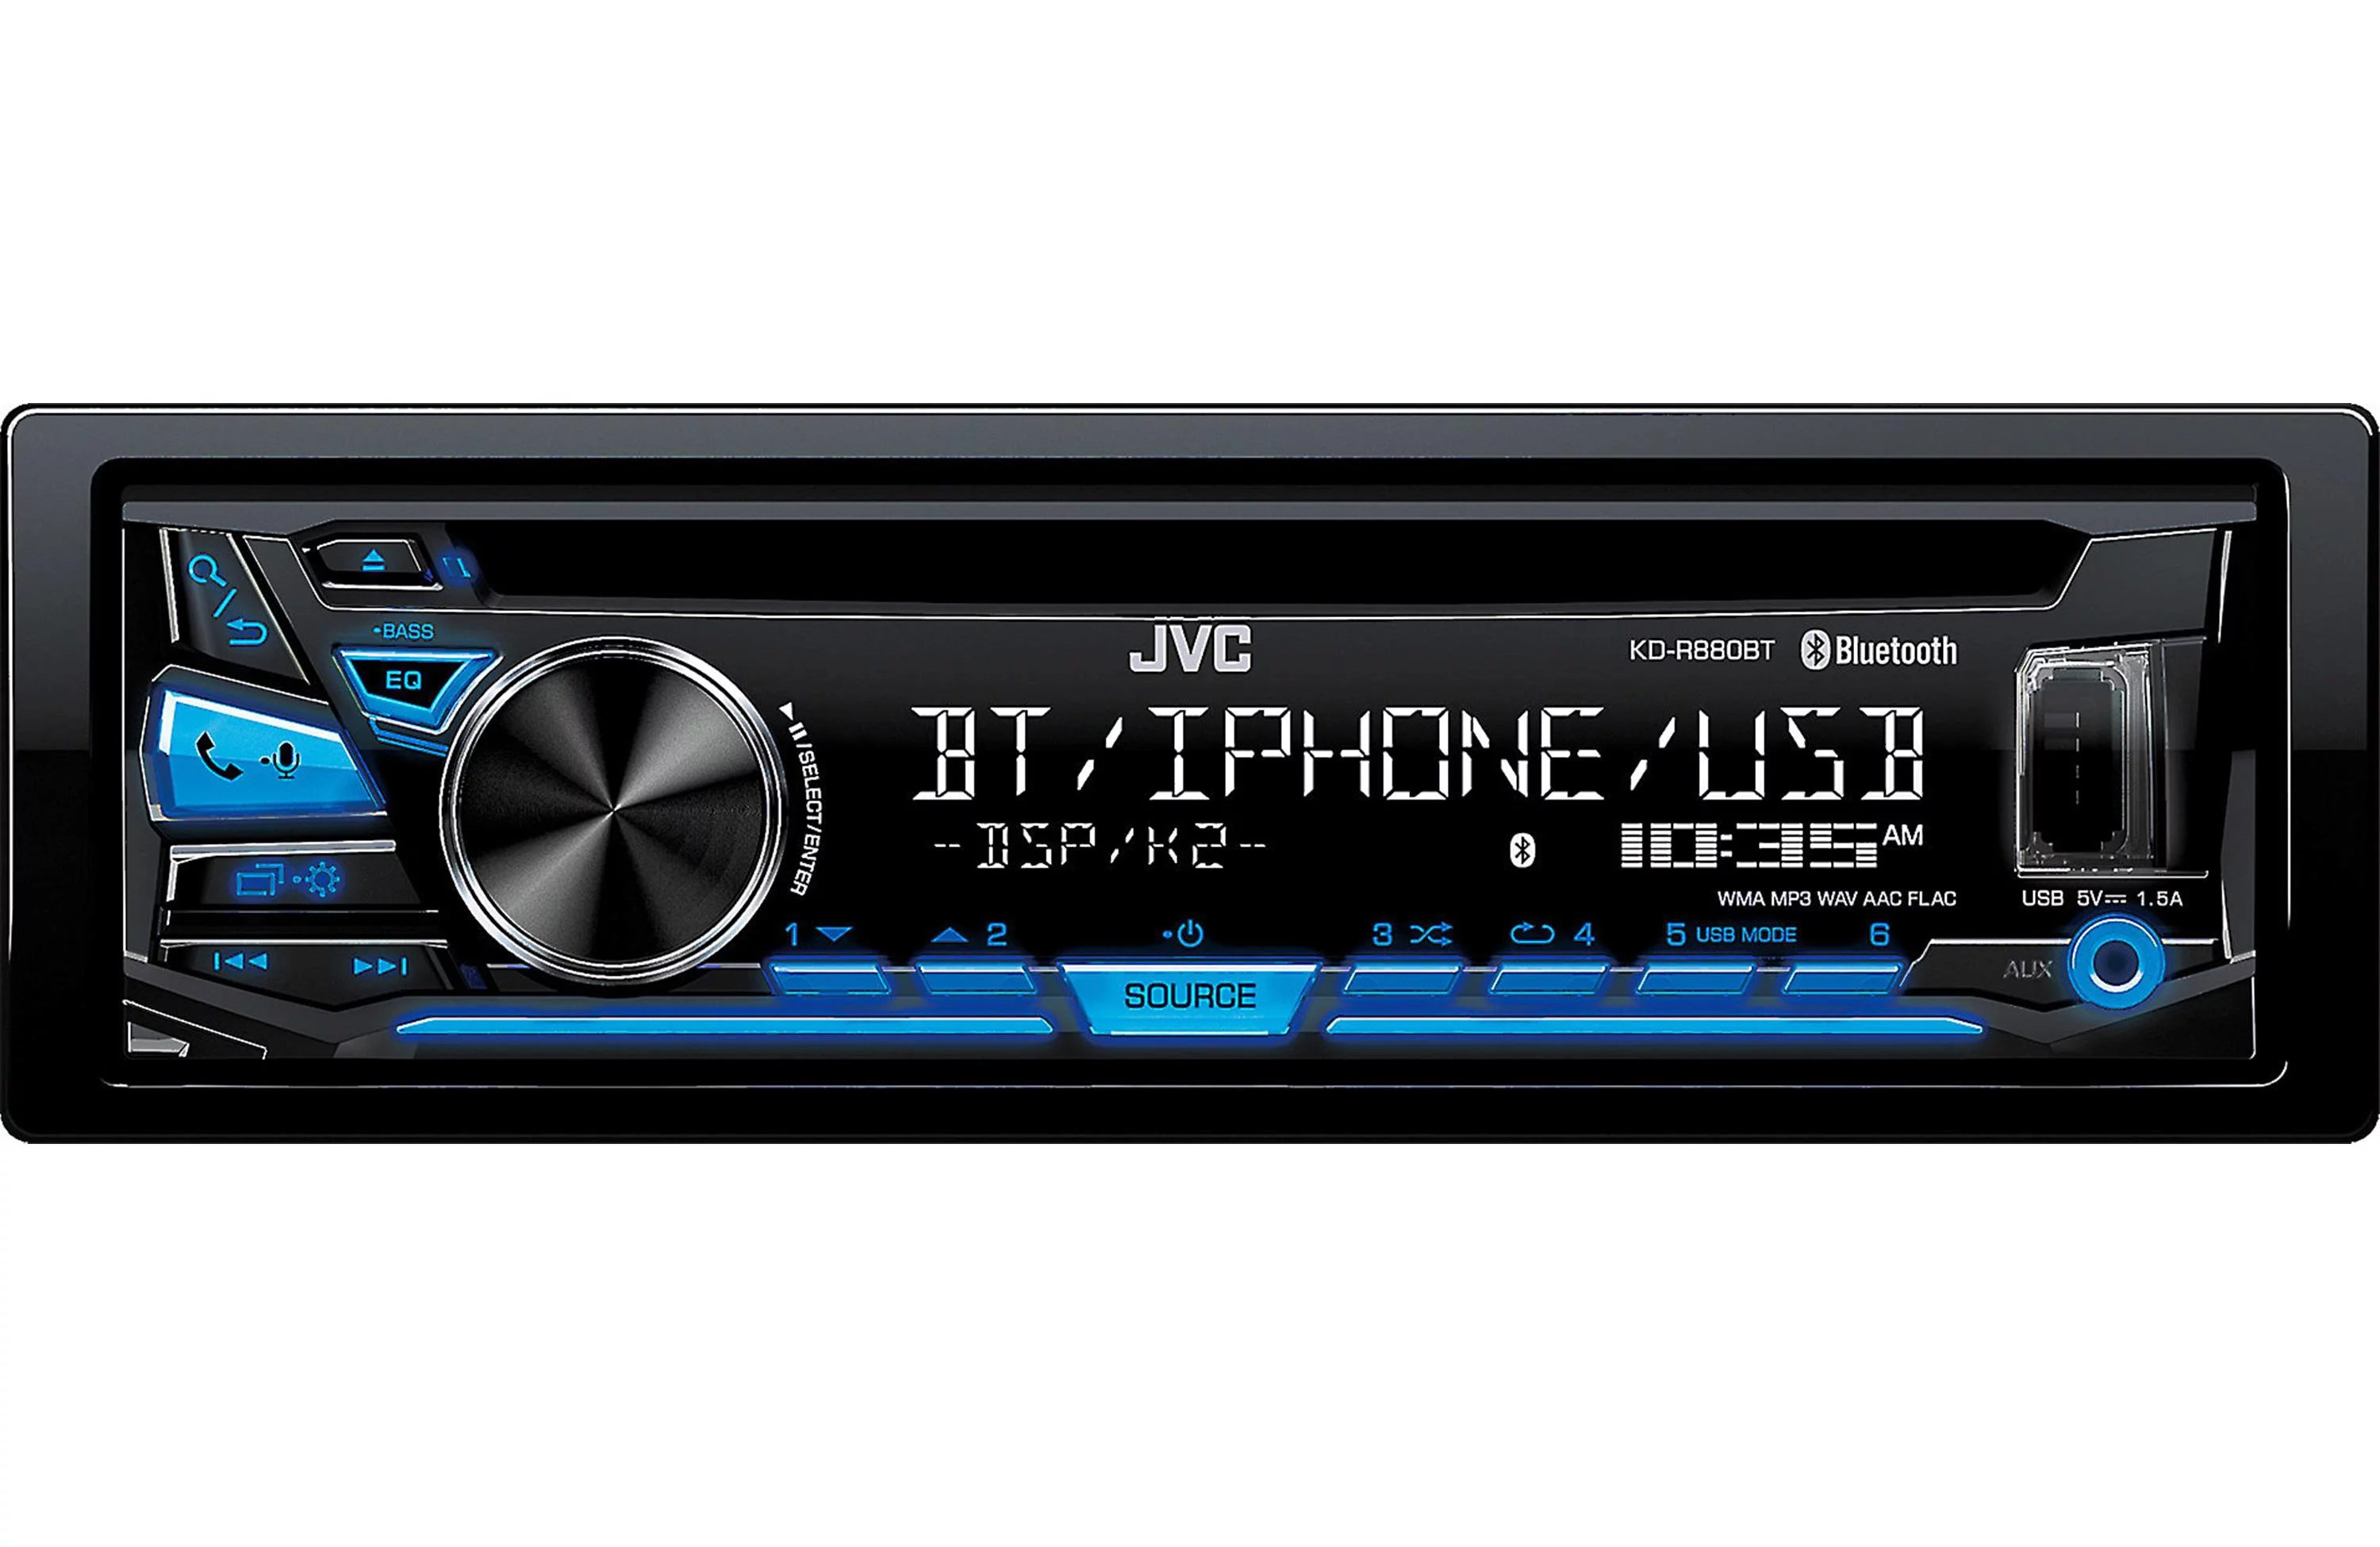 hight resolution of jvc kdsr83bt in dash cd built in bluetooth usb and detachable jvc kd r330 wiring jvc bluetooth wiring diagram